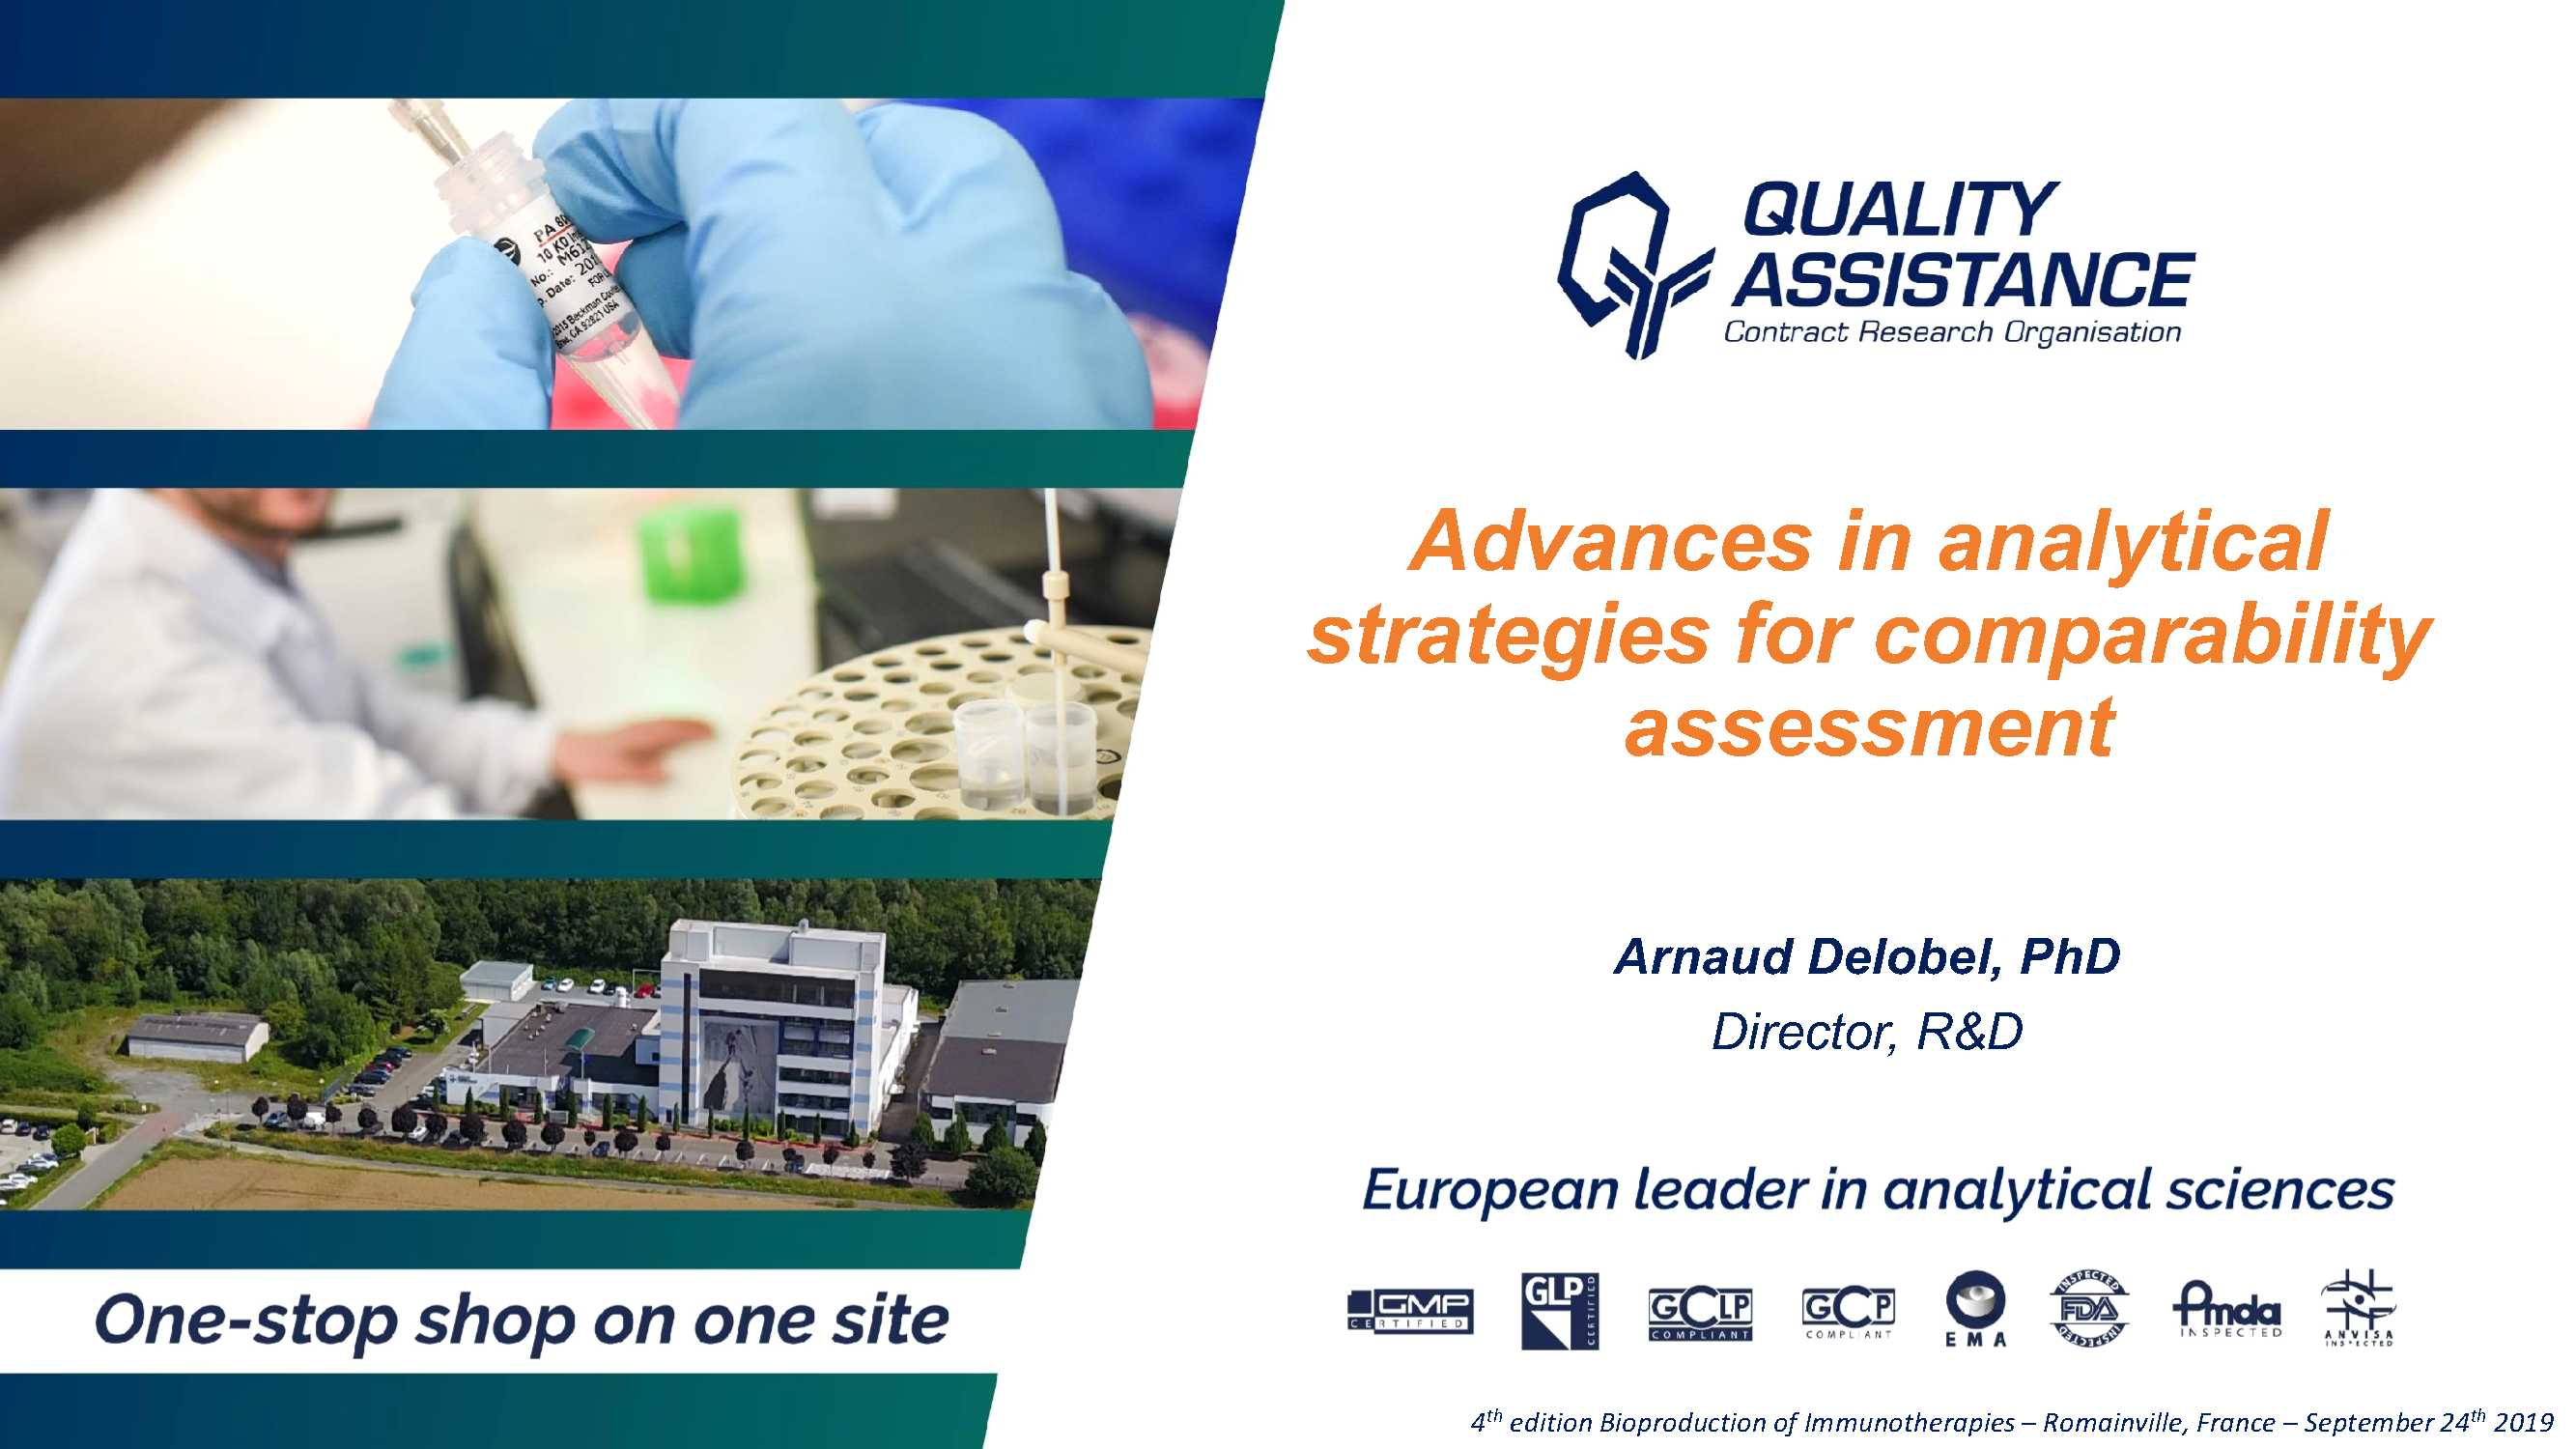 Quality Assistance Advances in analytical strategies